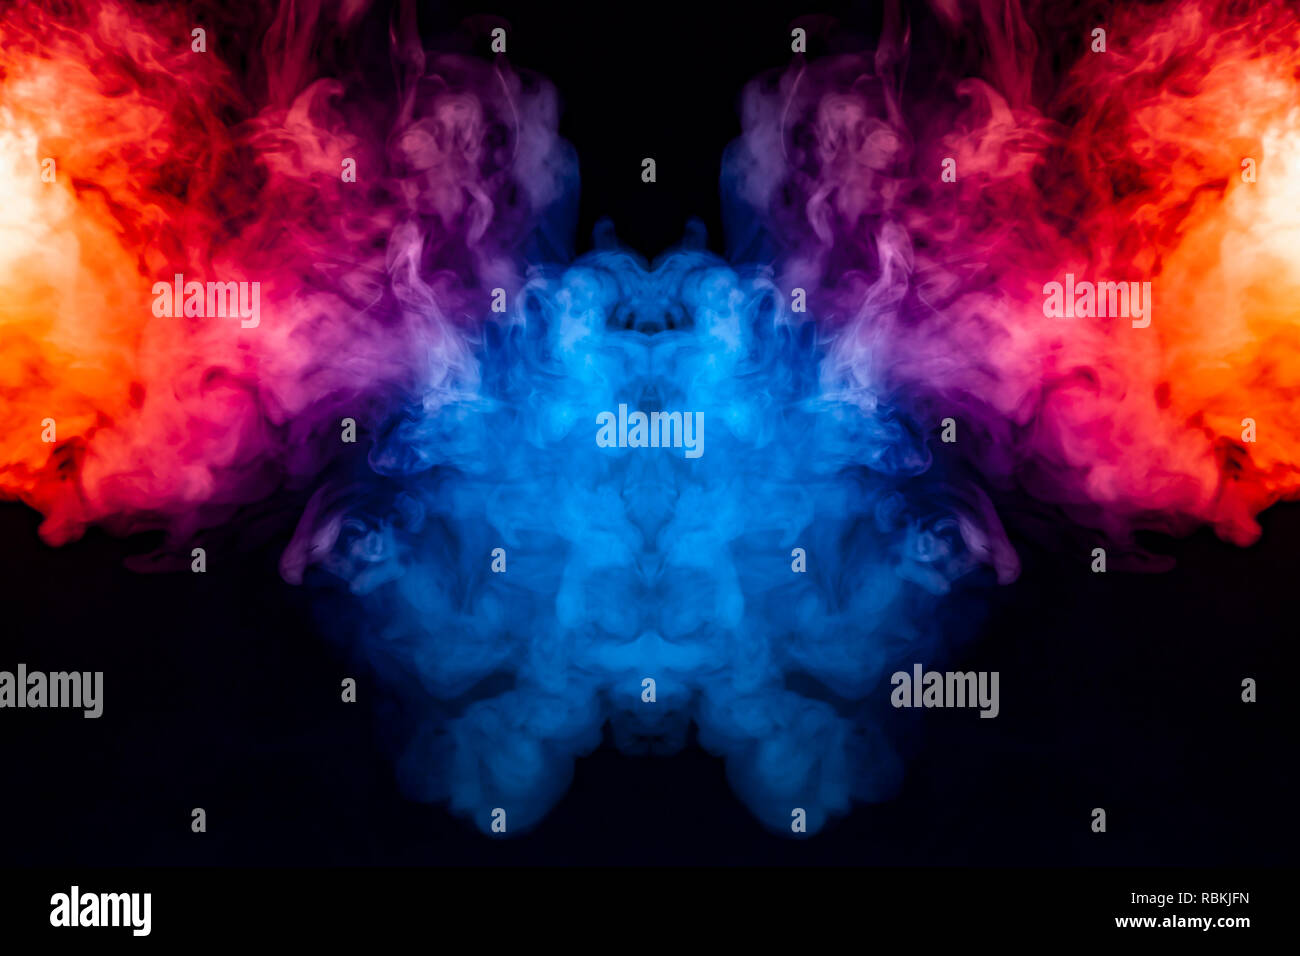 Curling smoke evaporating curls in the form of a spectacular, mystical head, highlighted with blue, red, purple on an isolated black background patter - Stock Image